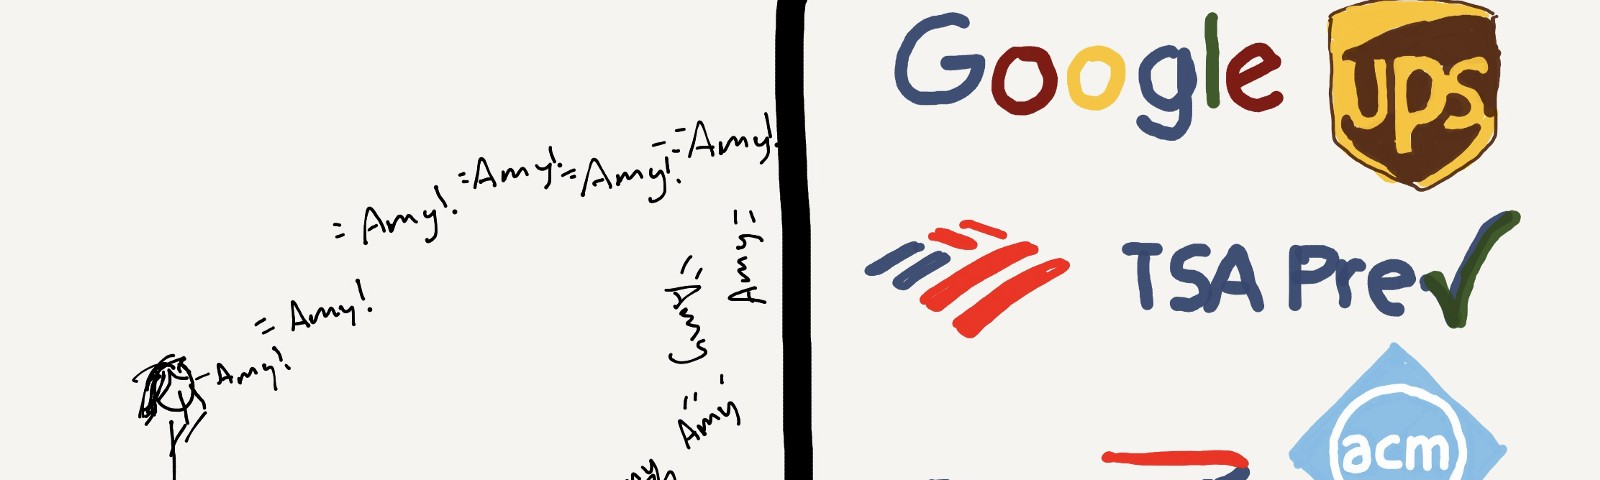 "A stick figure yelling a flurry of ""Amy!""'s at a wall, bouncing off in a pile. Corporate logos on the right, behind the wall."